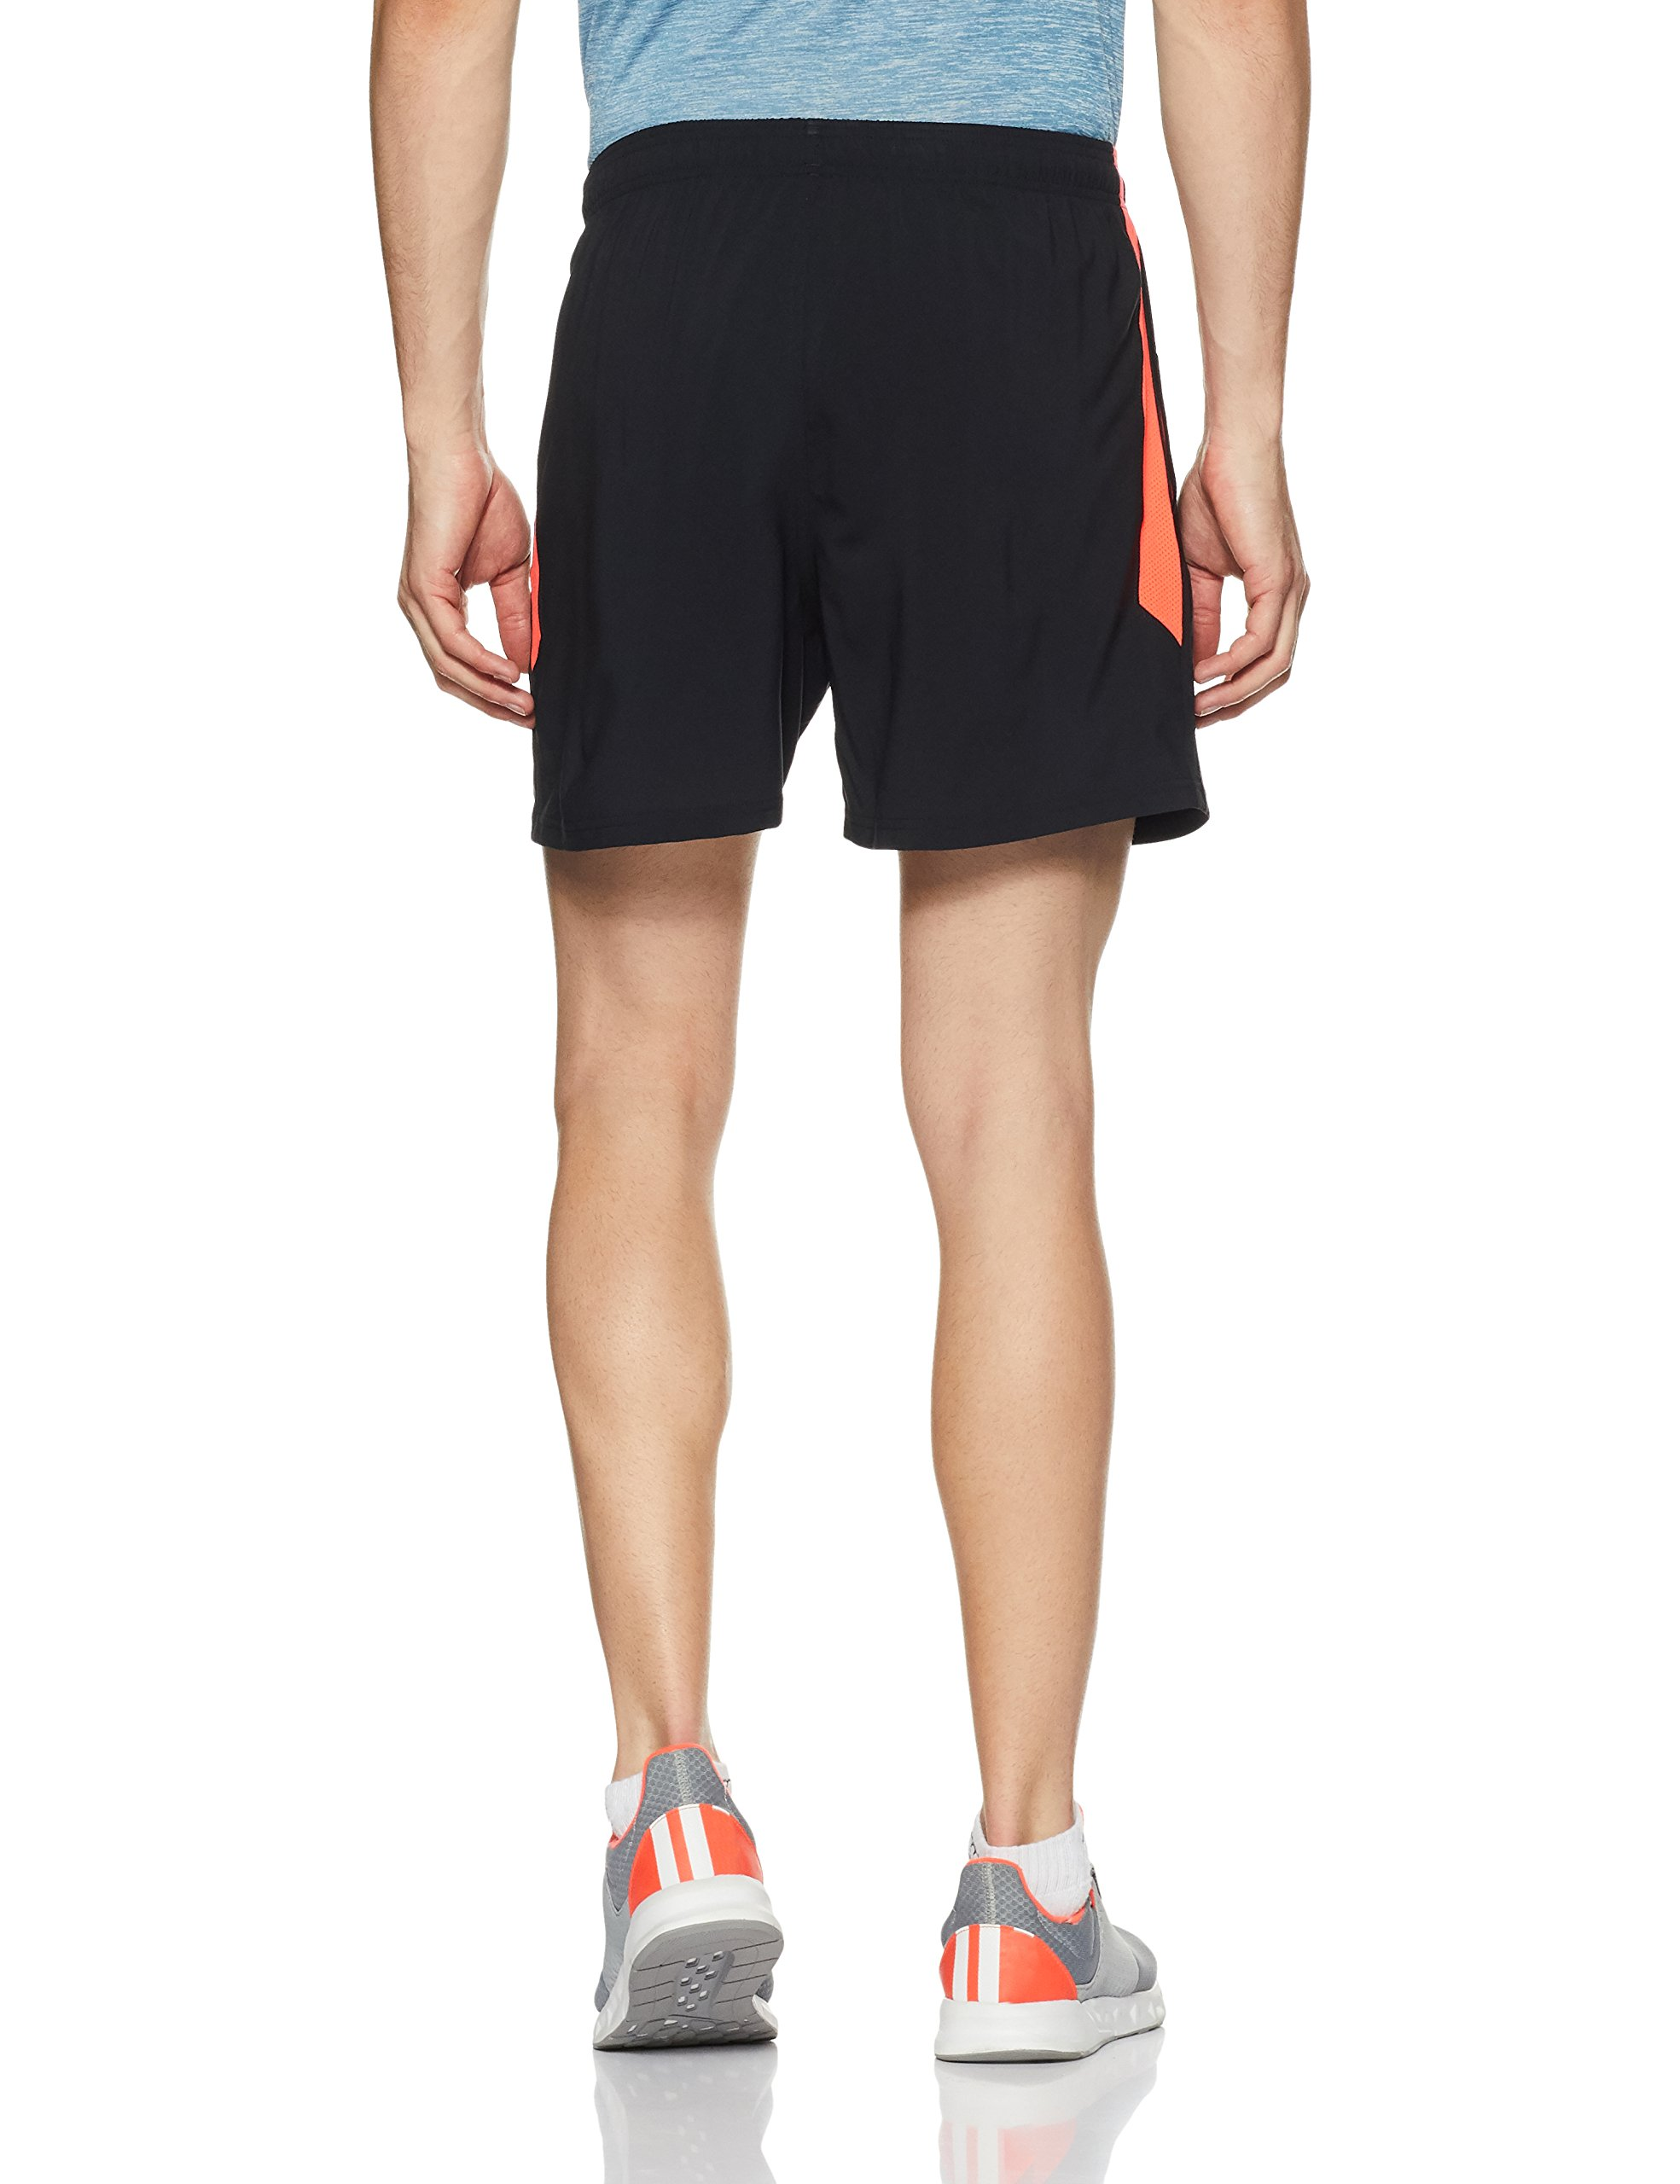 Under Armour Men's Launch 5'' Shorts,Black /Reflective, Small by Under Armour (Image #2)